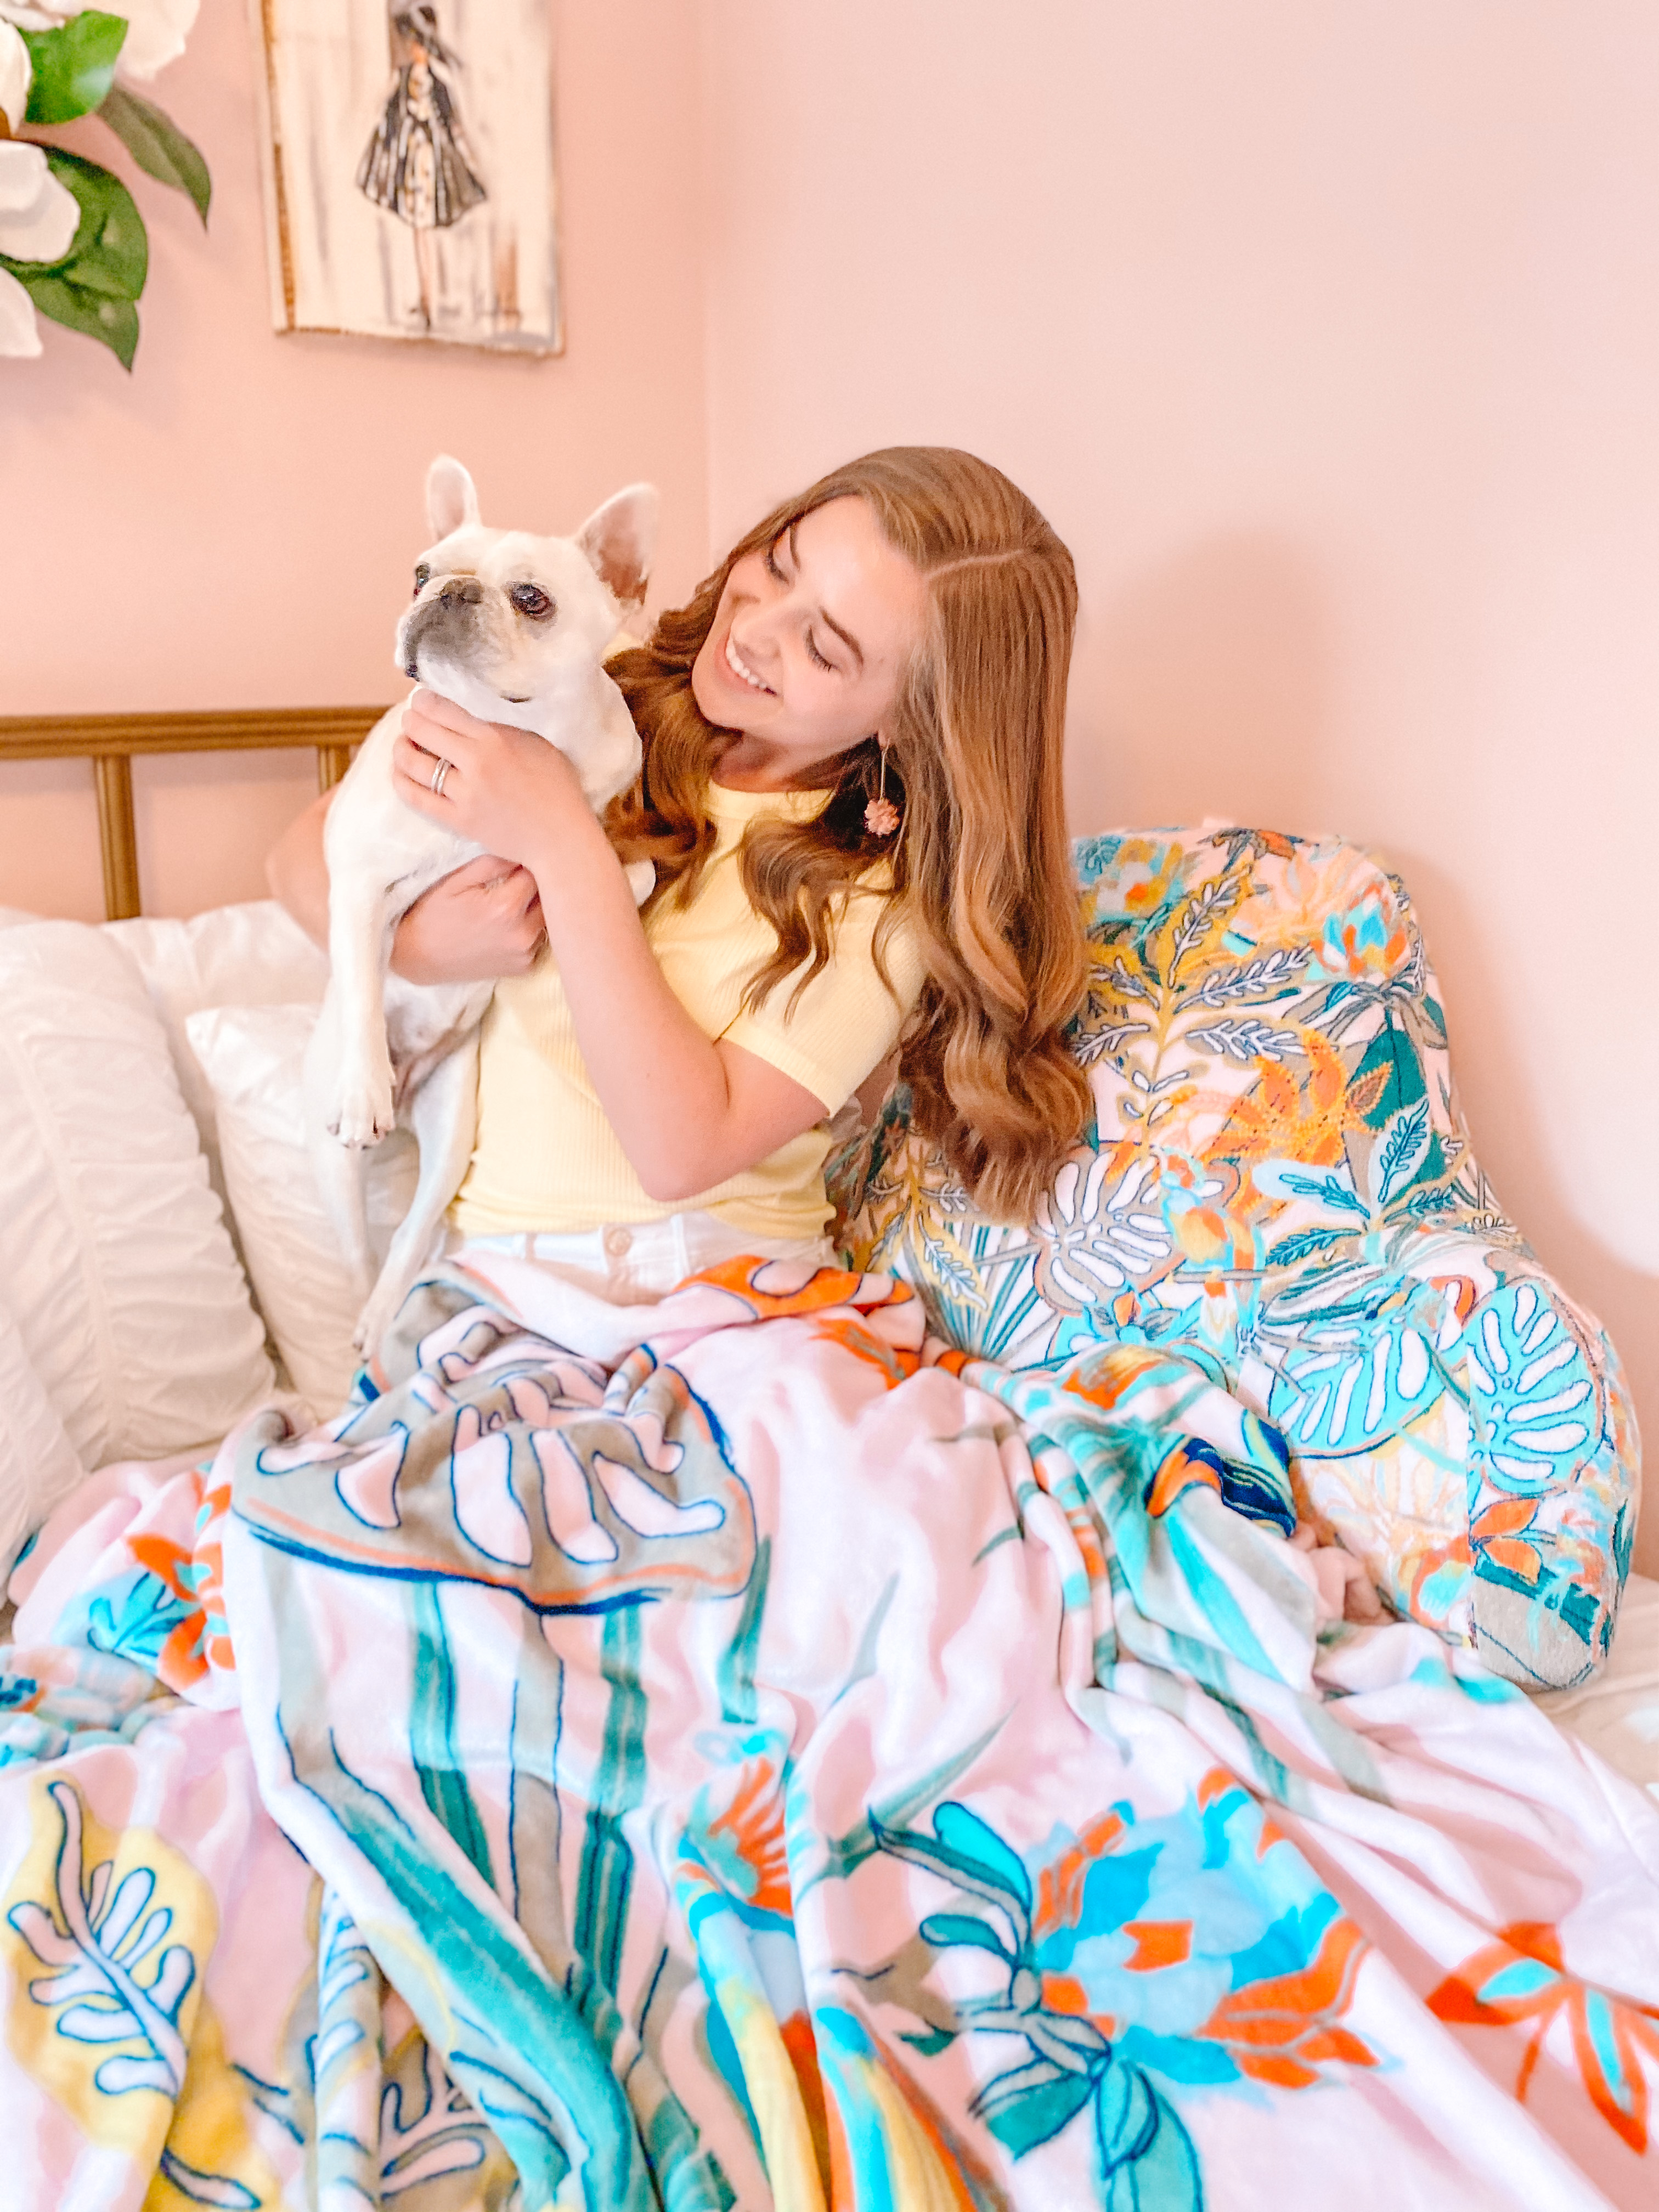 woman hold french bulldog puppy in bedroom. she has a vera bradley blanket and matching buddy pillow in the pattern rain forest canopy